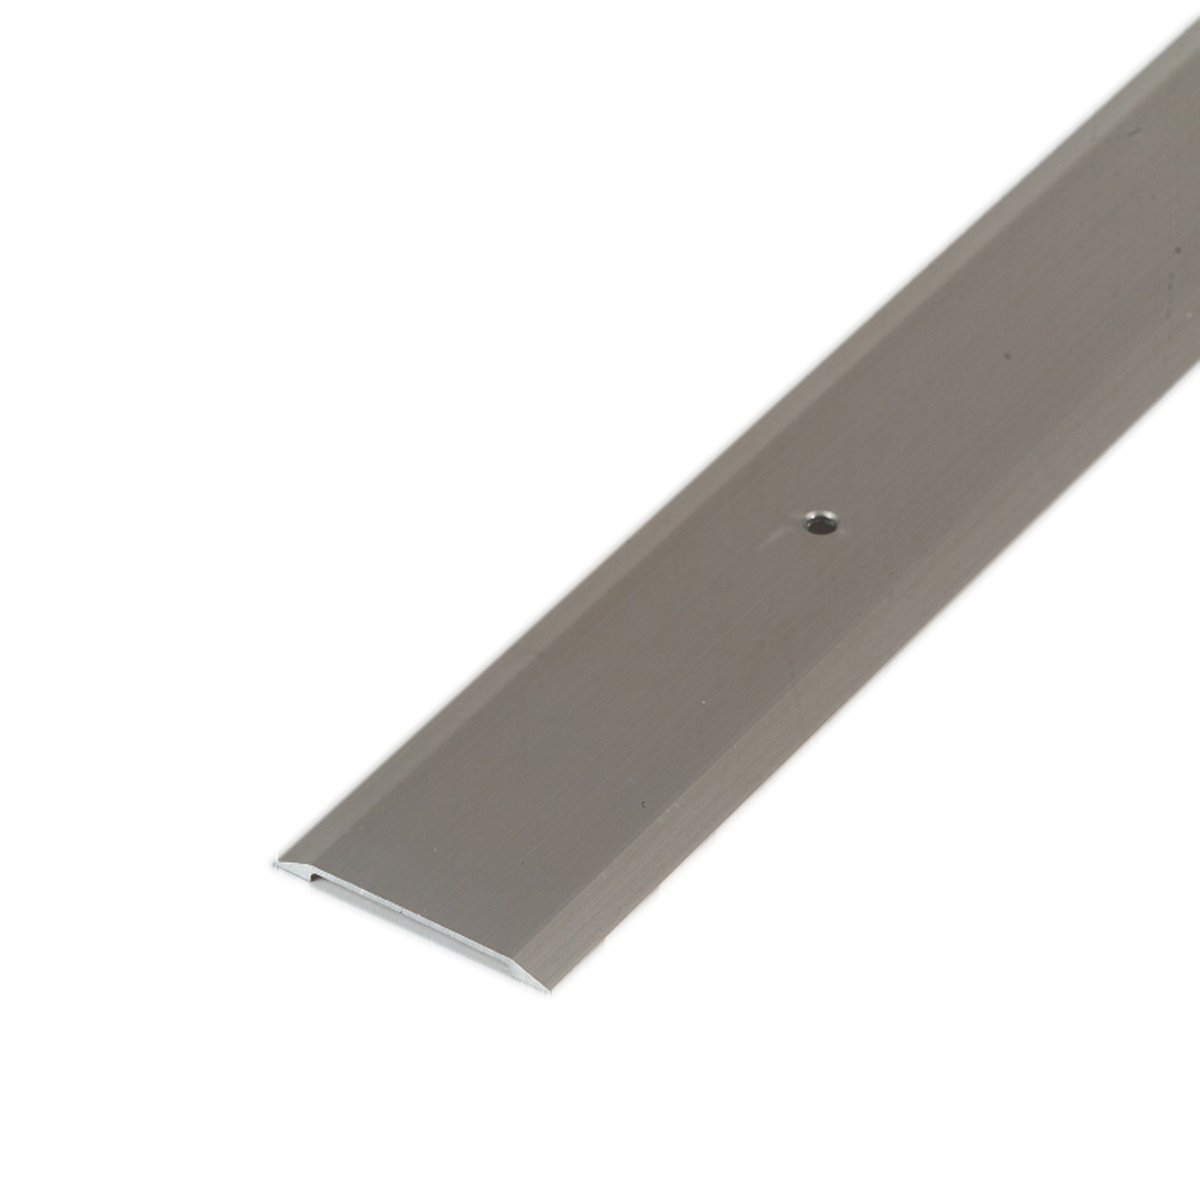 M-D Building Products 49010 Premium Aluminum Flat Top Threshold, 1-3/4-by-36 Inches, Satin Nickel